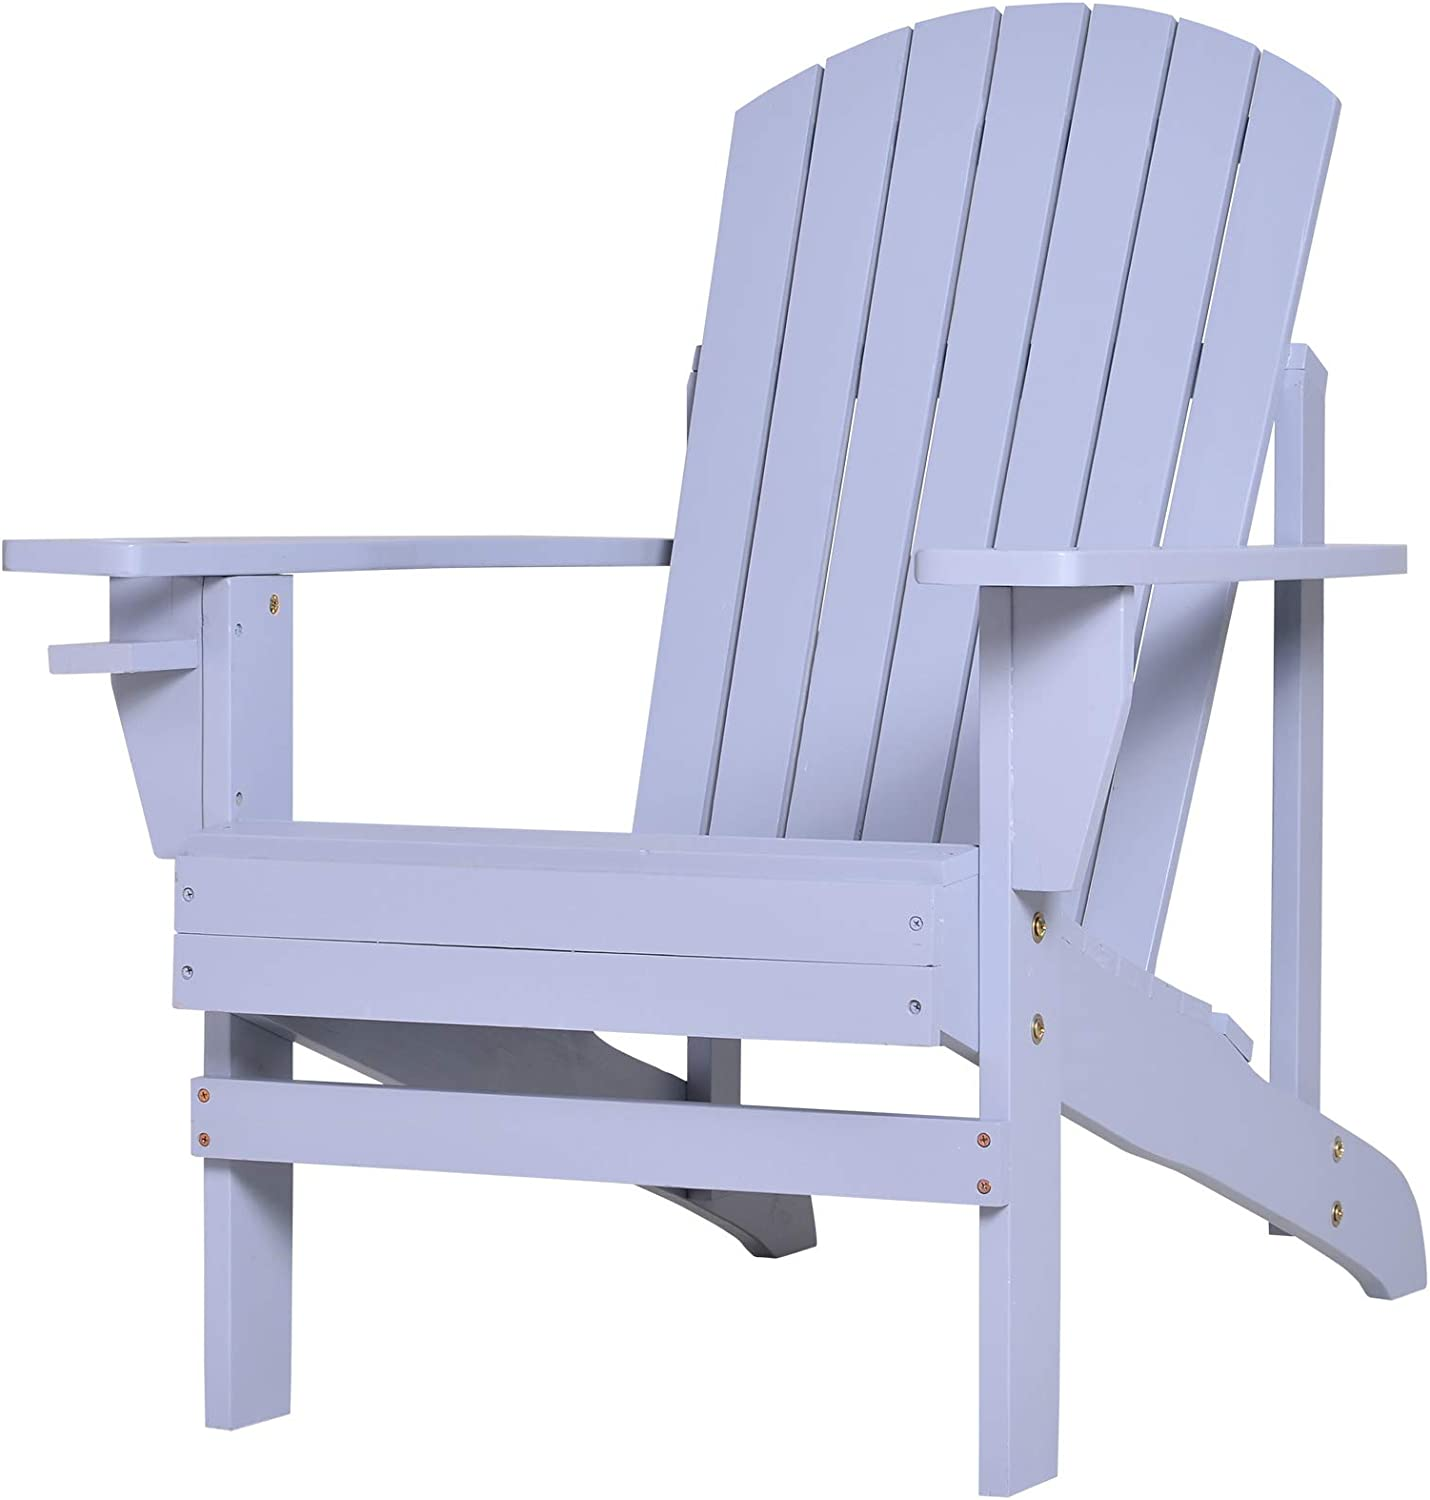 Special sale item Our shop most popular Outsunny Outdoor Classic Wooden Adirondack Lounge Deck Chair wit